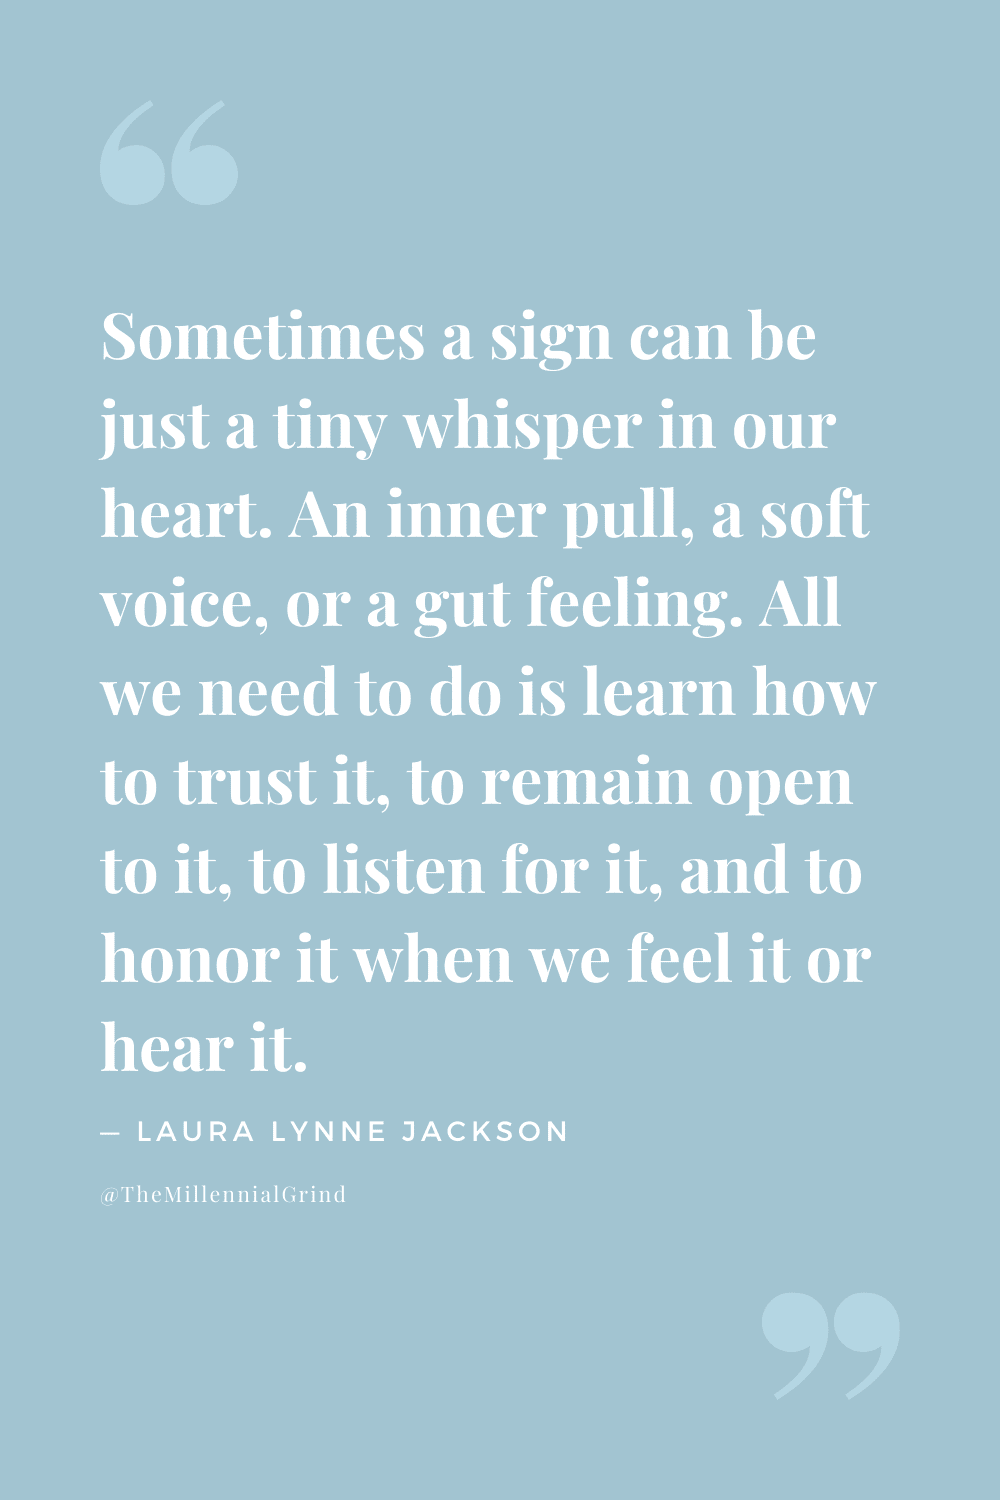 Quotes From Signs by Laura Lynne Jackson